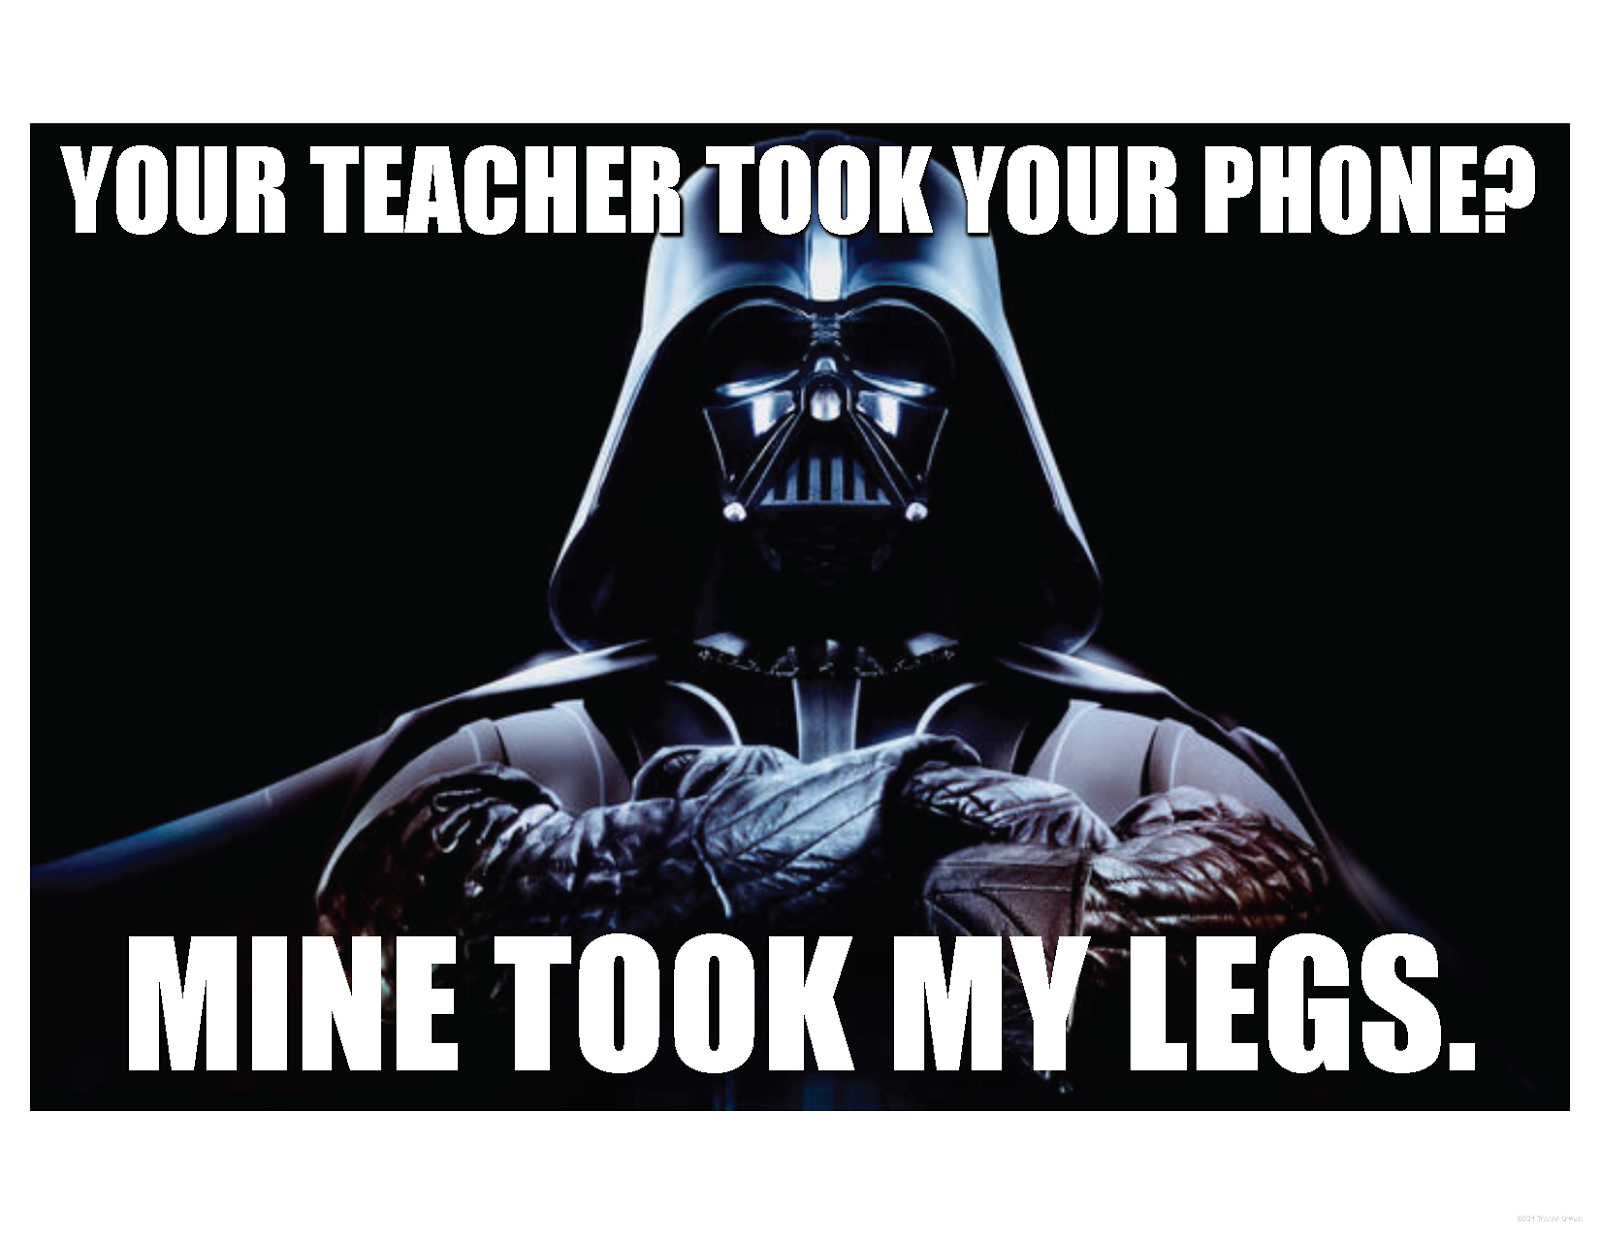 Ehs Class Of 2016 Satire Teachers Practice Valuable Skills Every Day Darth Vader Star Wars Awesome Darth Vader Meme